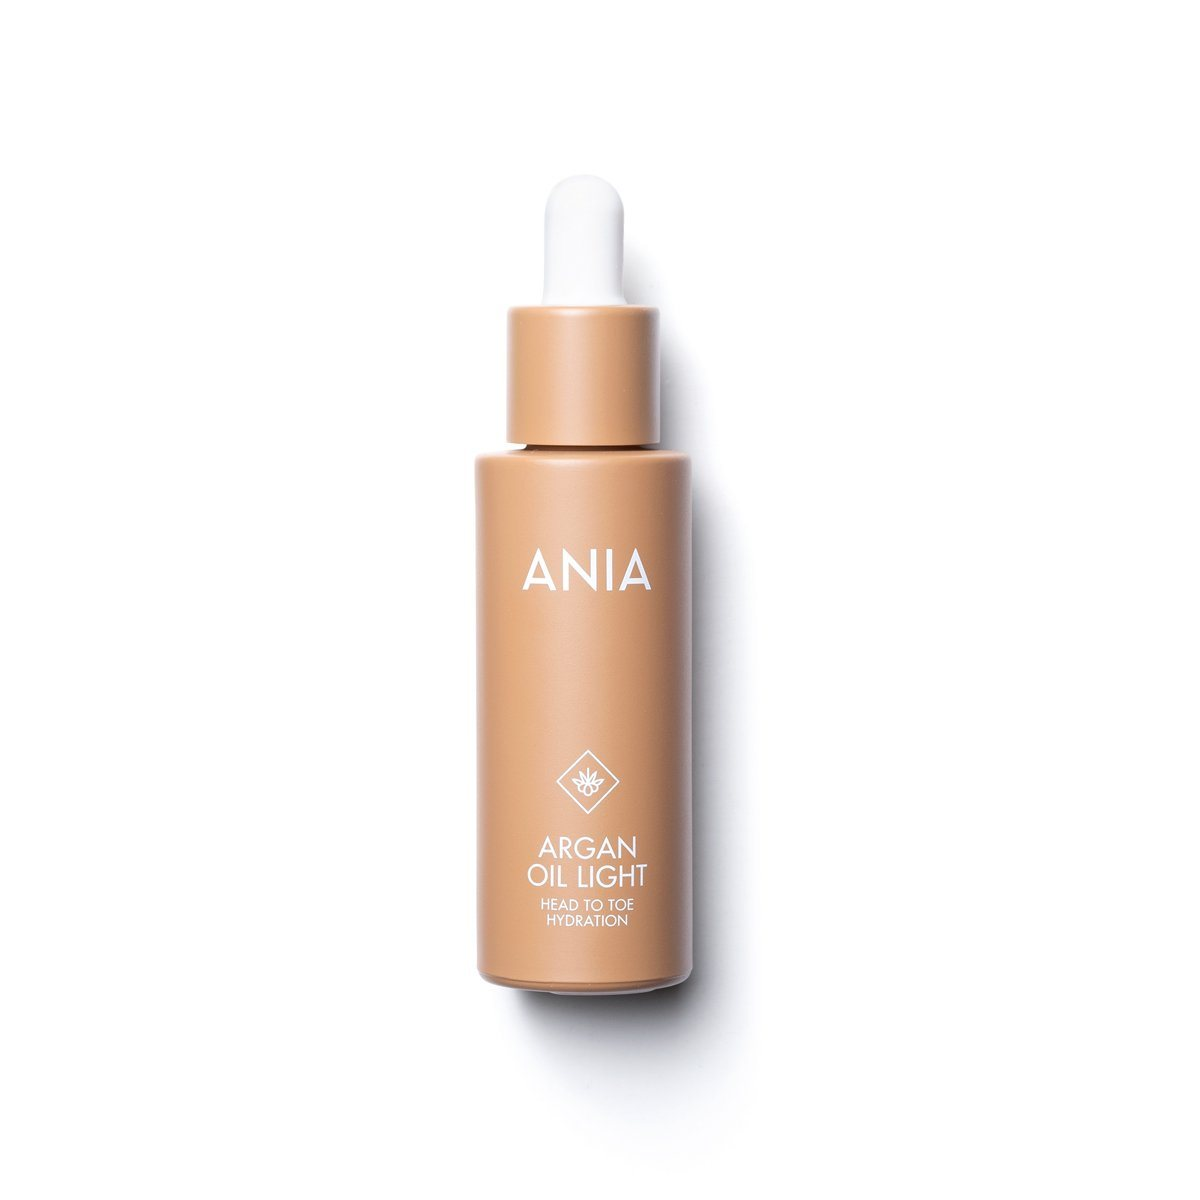 ANIA argan light